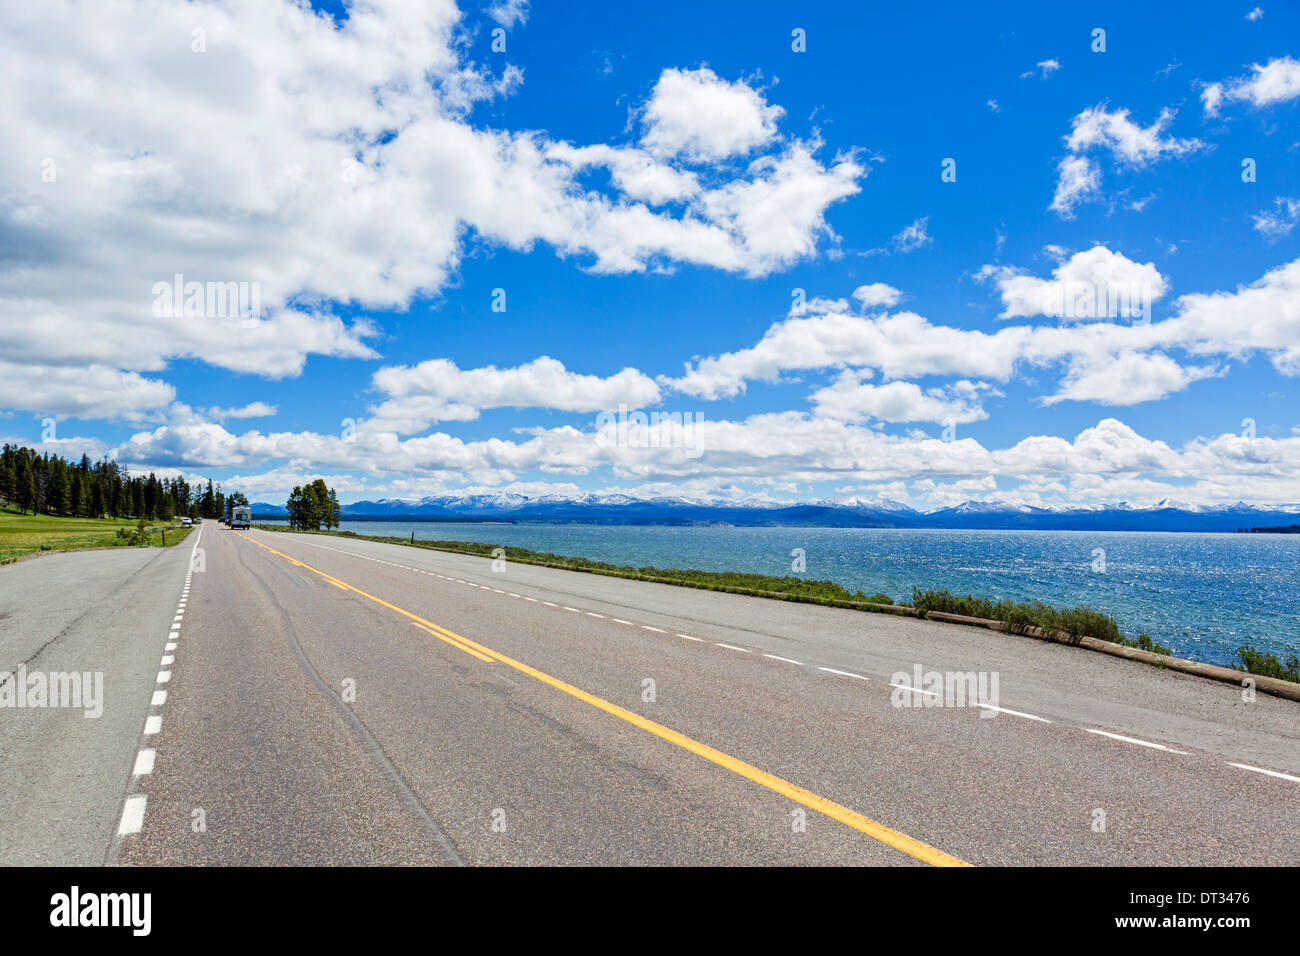 Die Grand Loop Road entlang den Ufern des Yellowstone Lake im Bridge Bay, Yellowstone-Nationalpark, Wyoming, USA Stockfoto